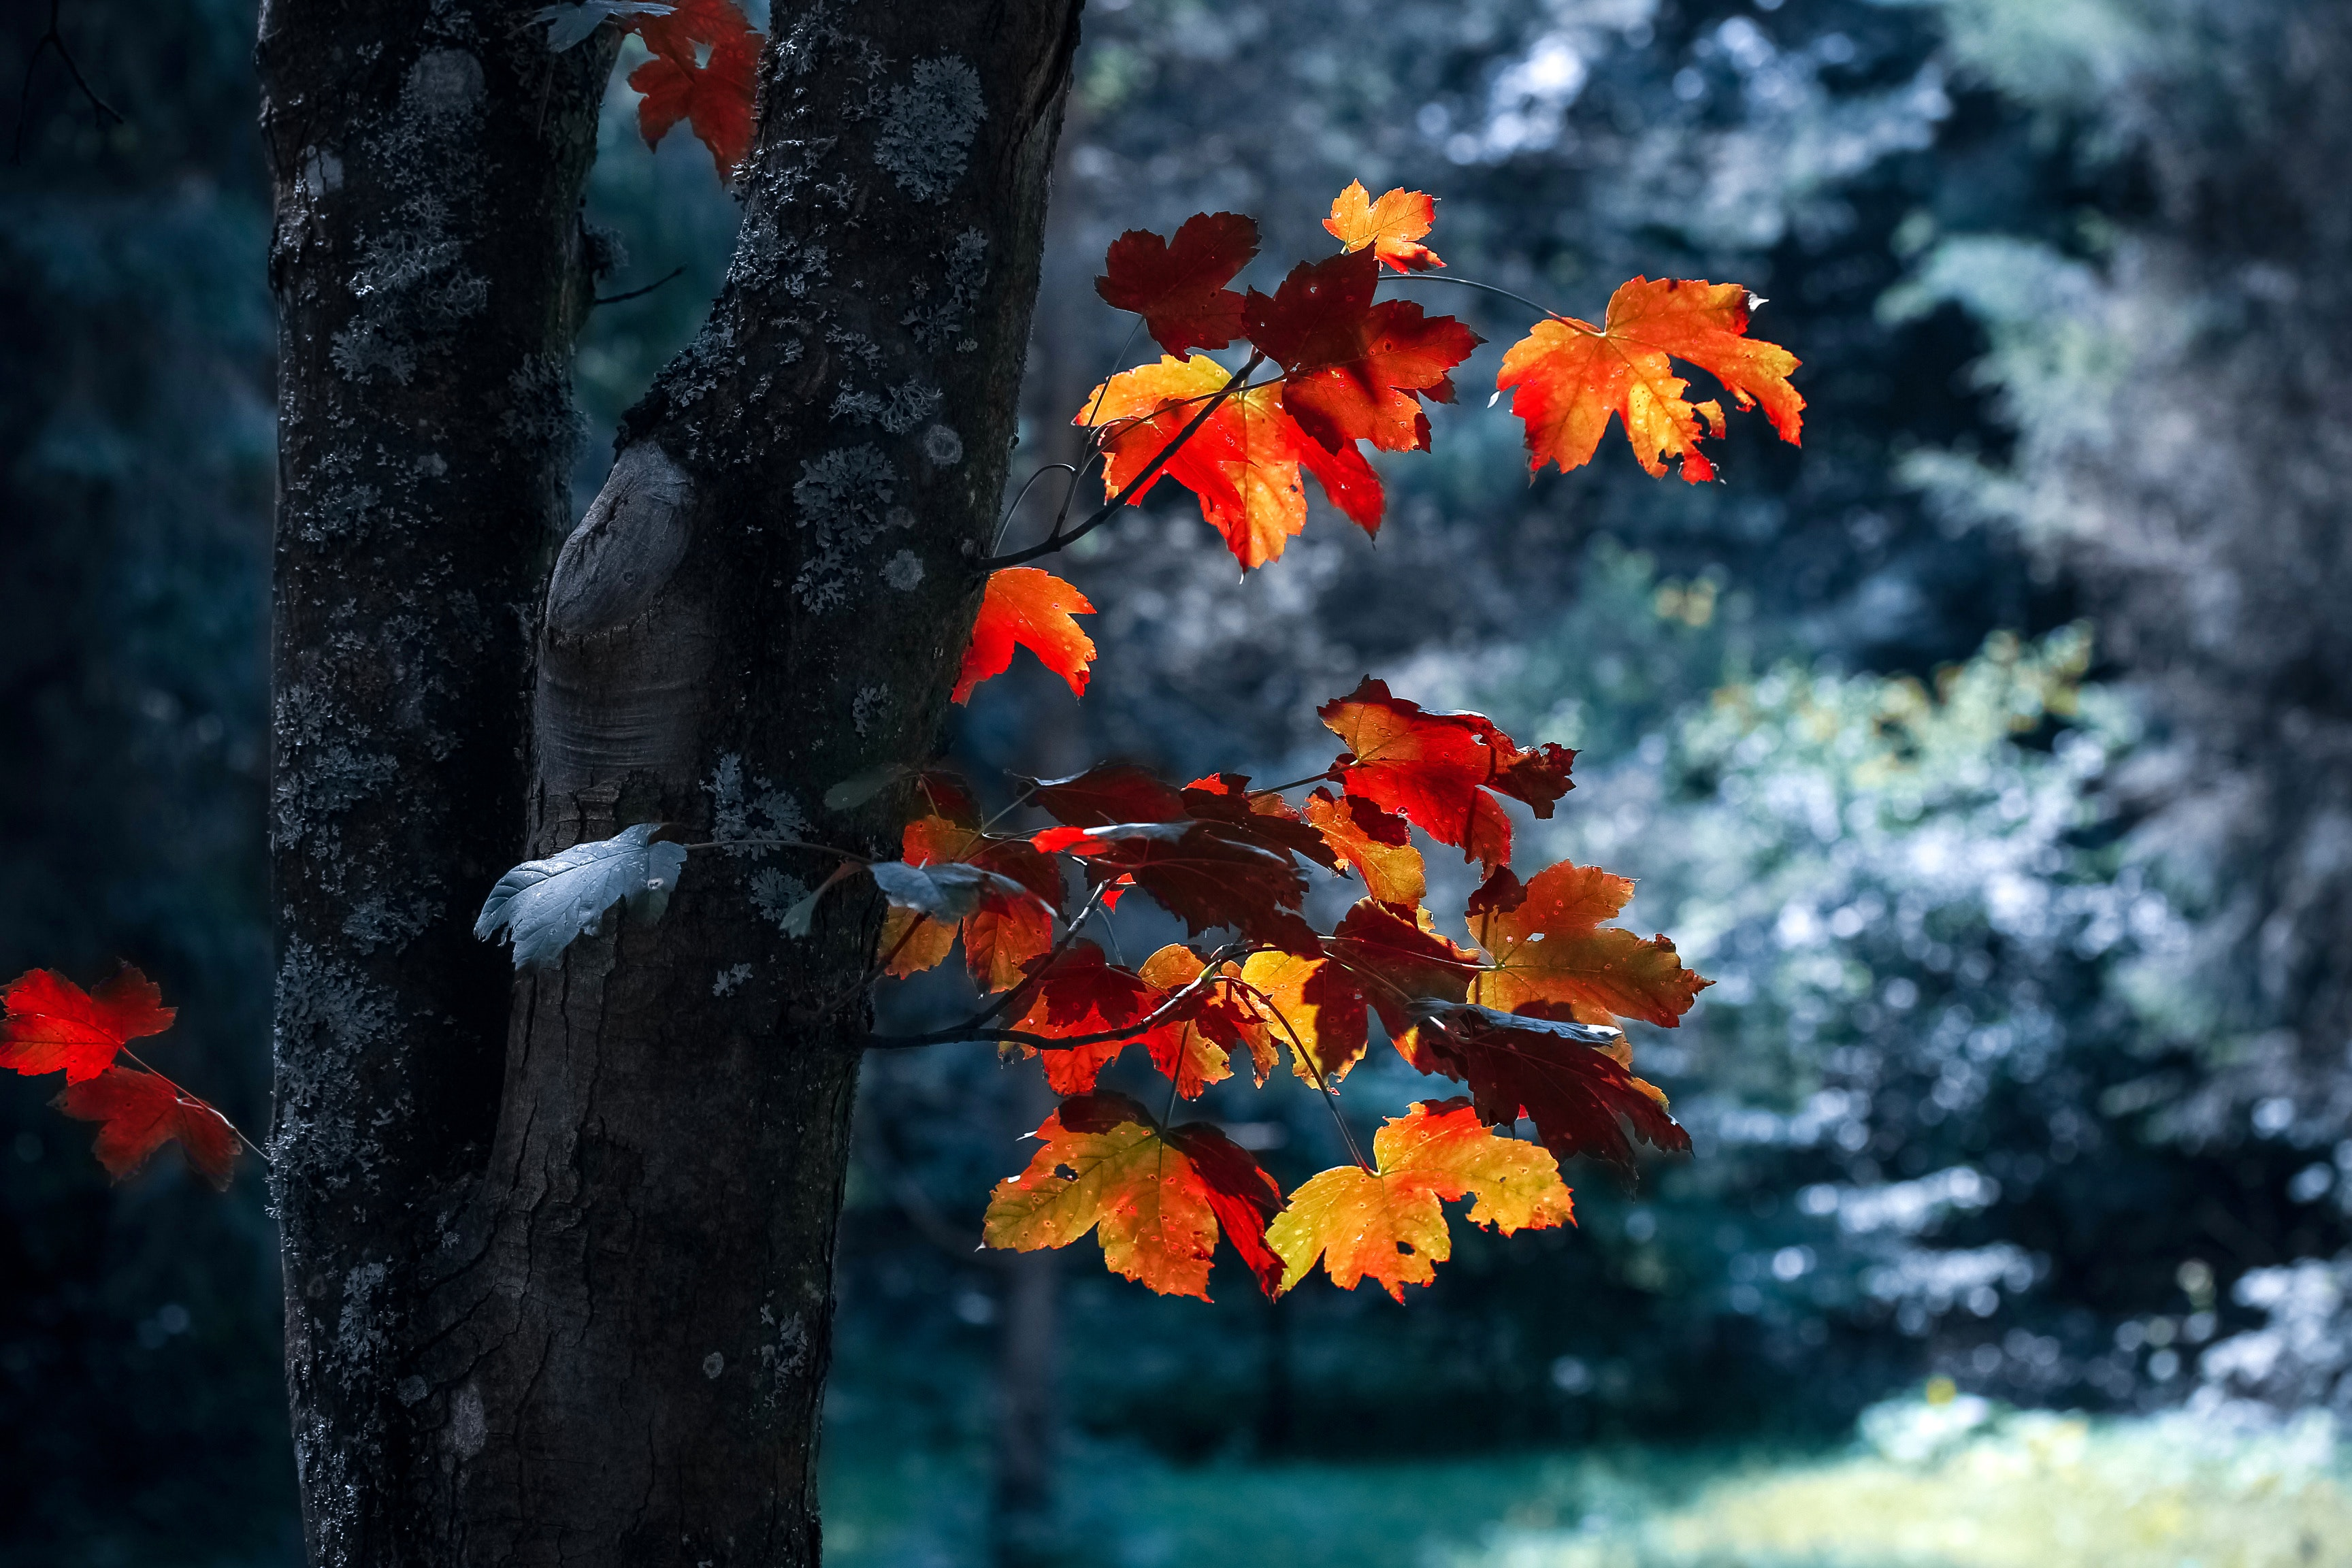 20 Creative Fall Photography Ideas - Autumn Leaves by Vali S. via Pexels | http://www.roseclearfield.com